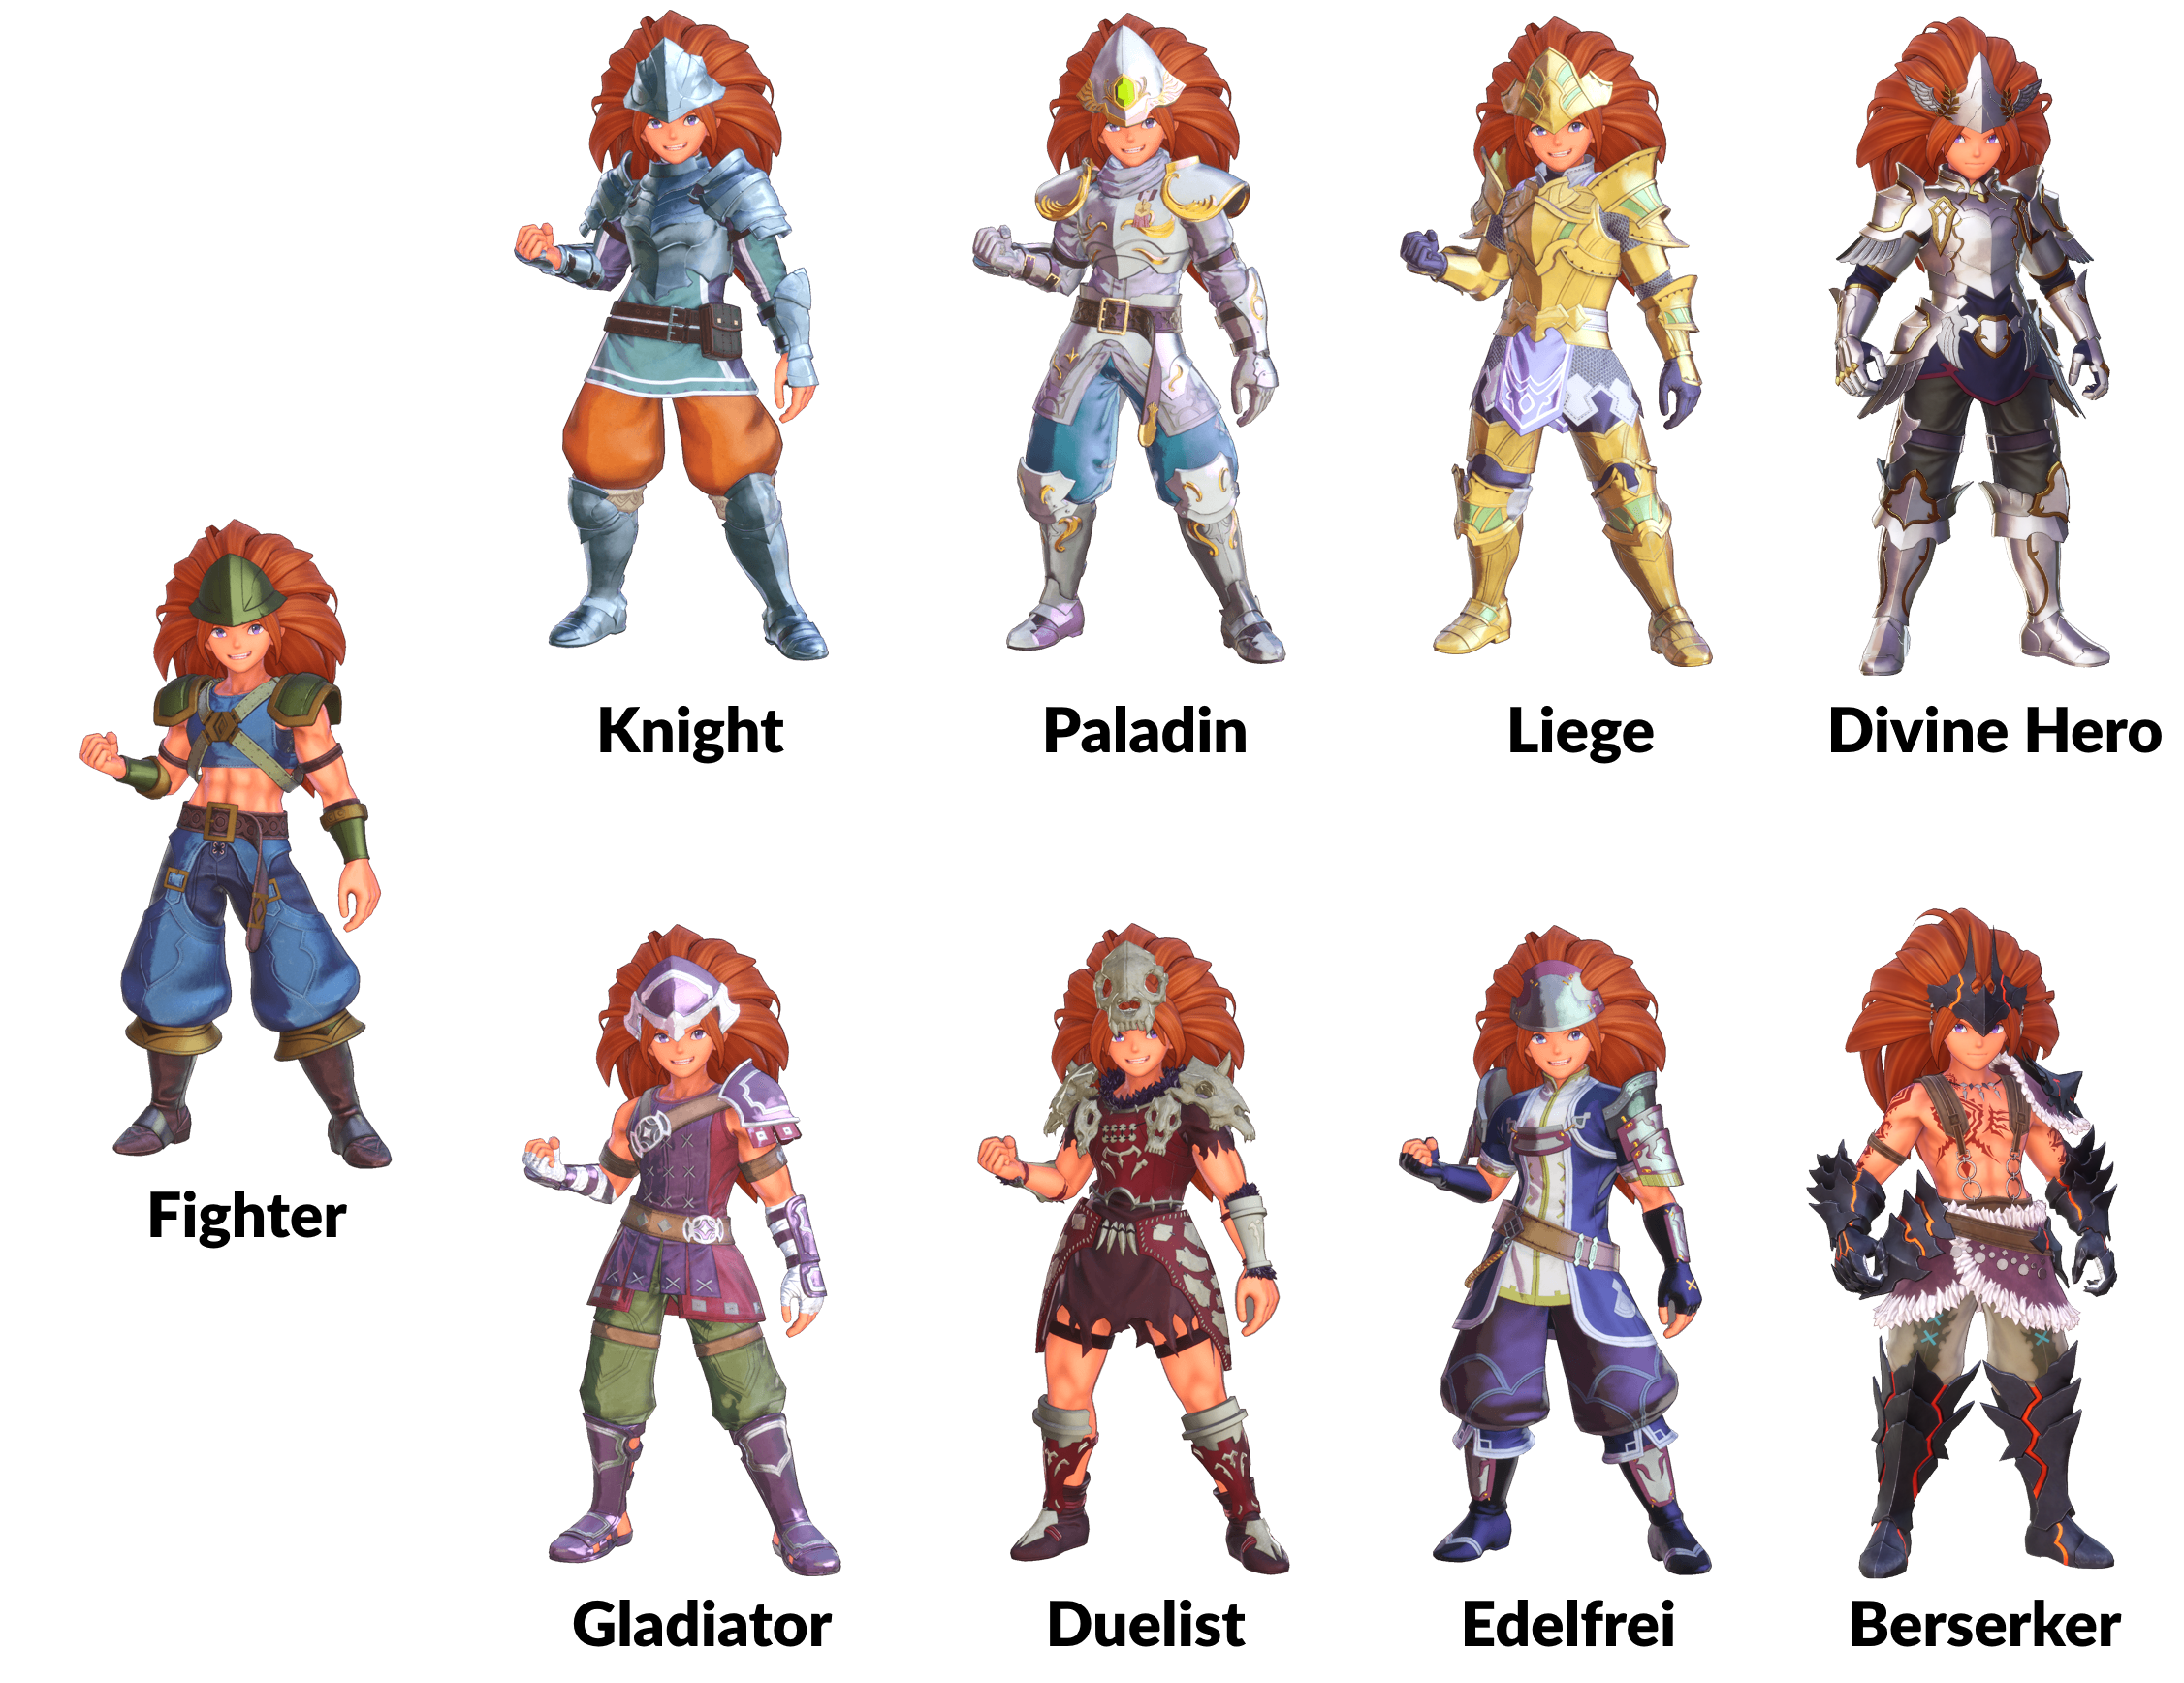 Trials Of Mana Class Guide Best Classes Class 4 And How To Change And Reset Your Class Rpg Site Character sheet for the wrong way to use healing magic. trials of mana class guide best